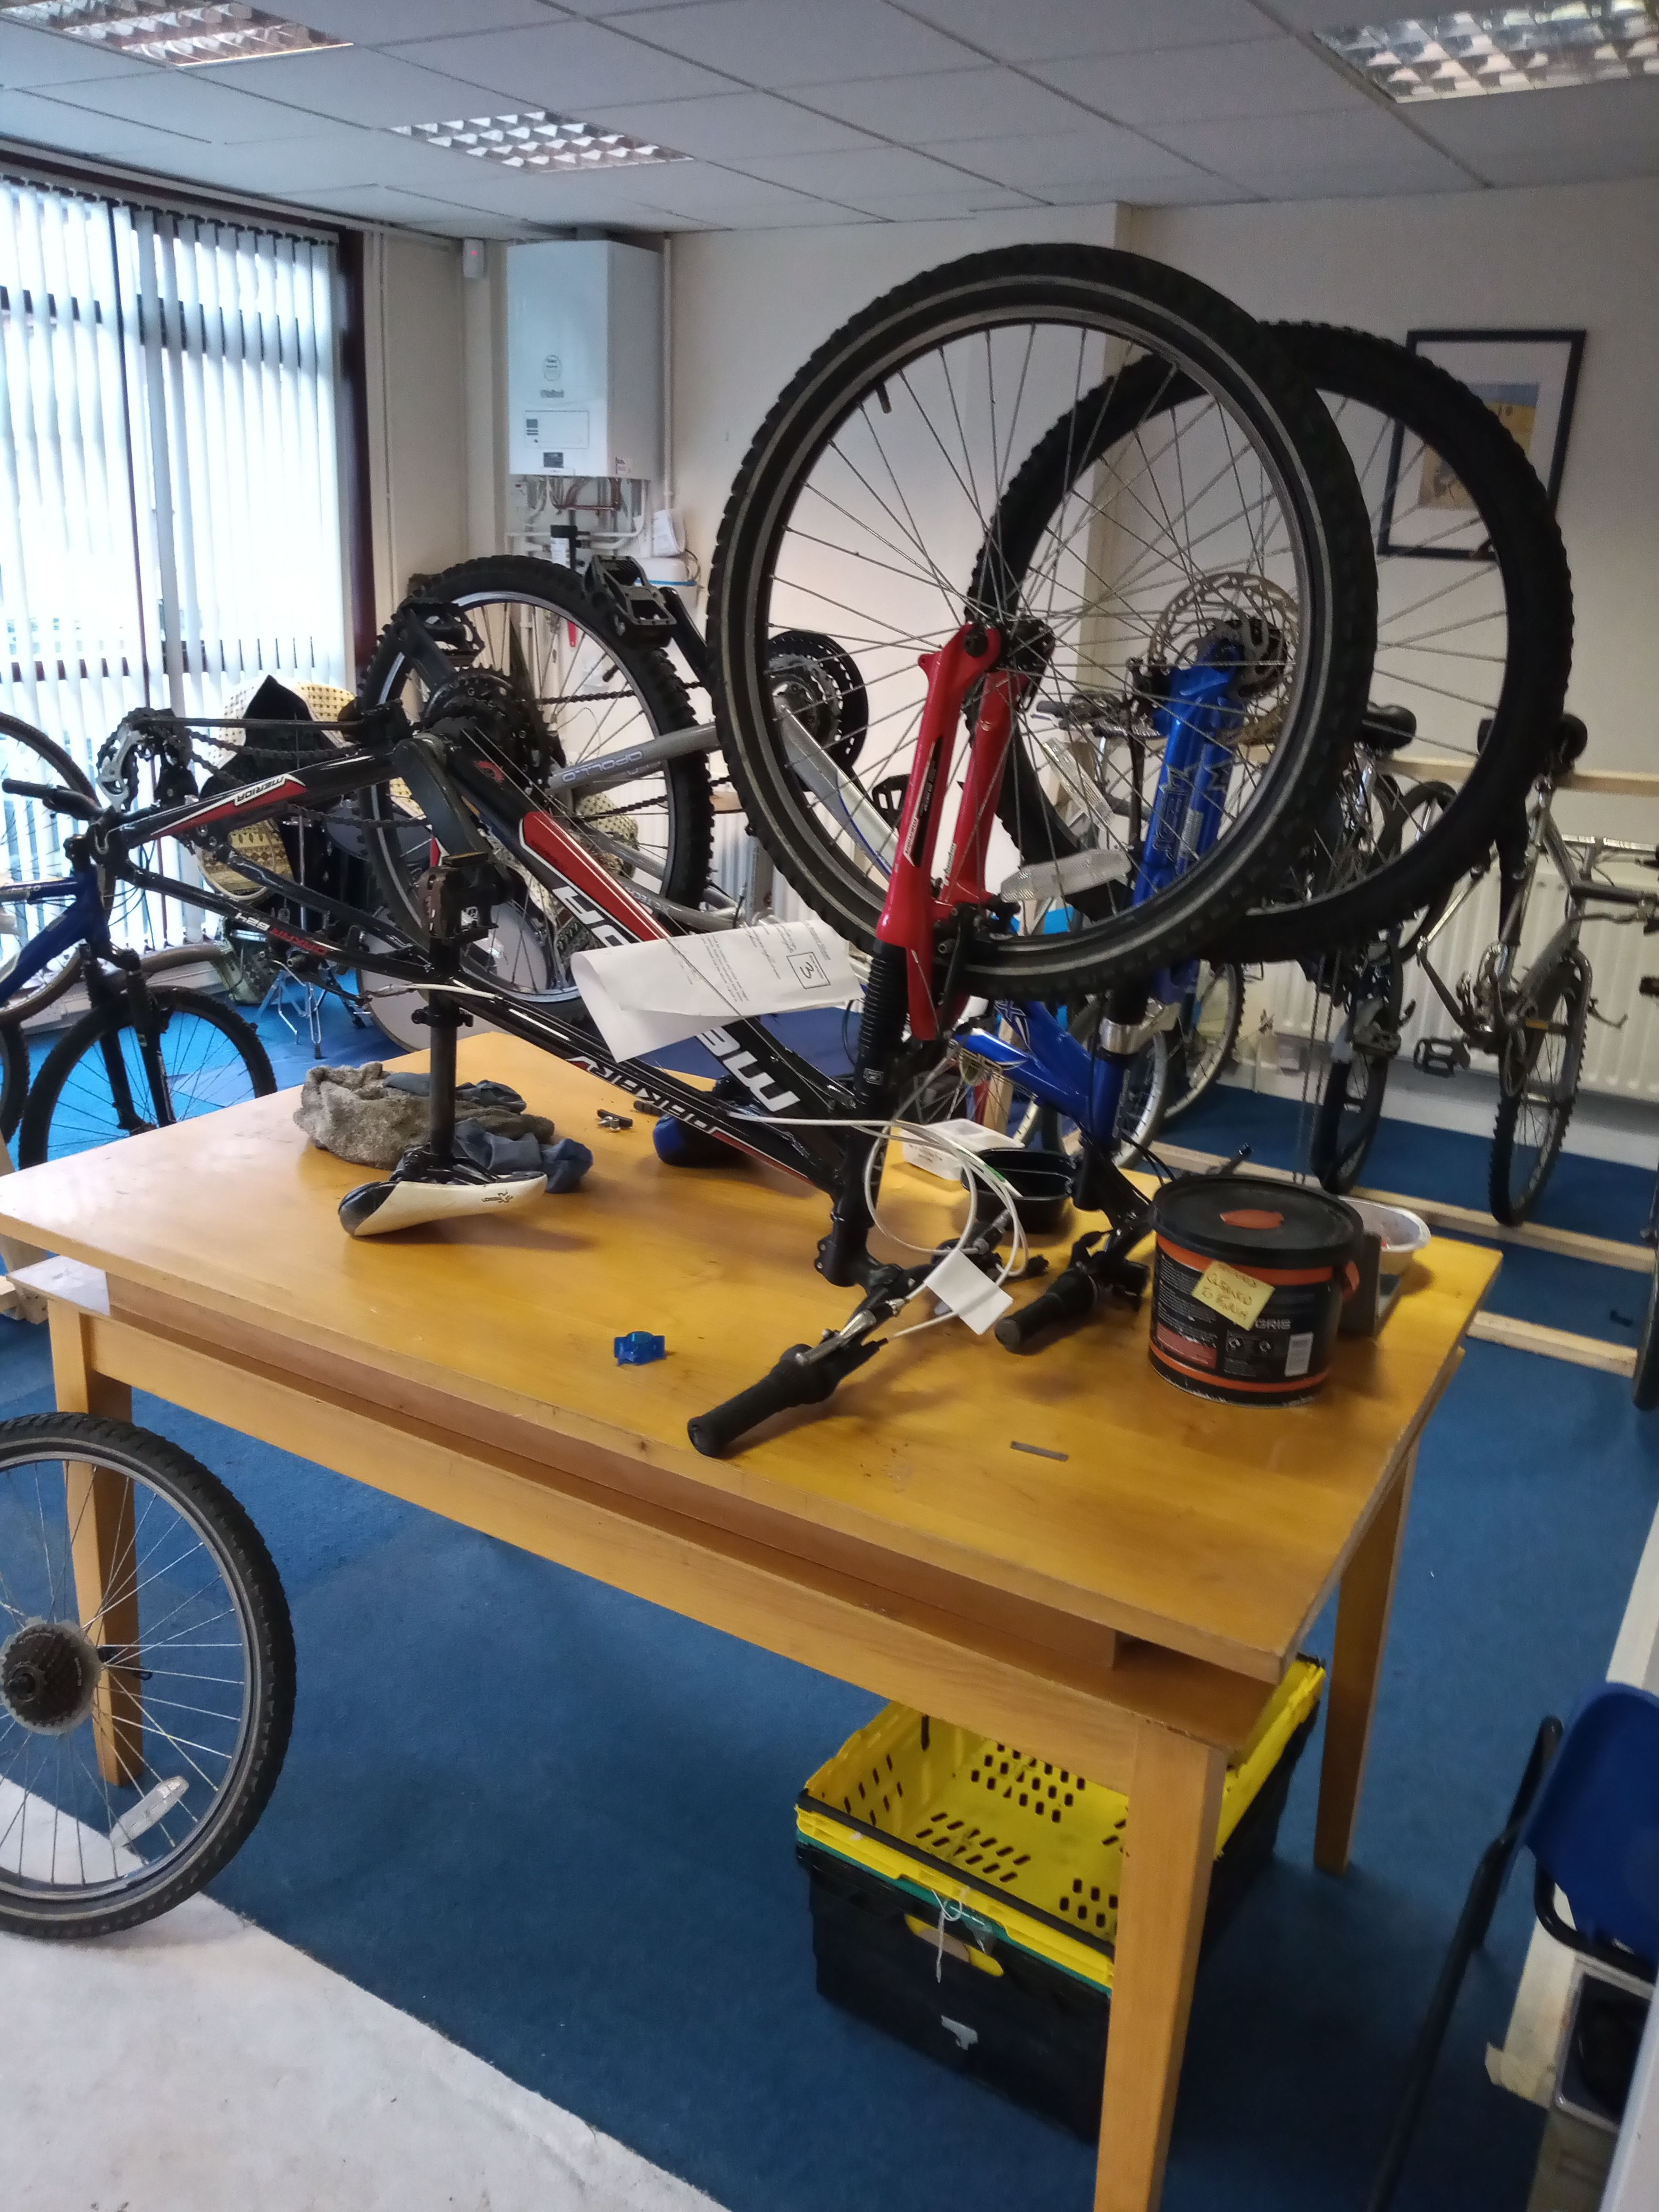 MOBILE WORKSHOP: Some of the bikes being reconditioned